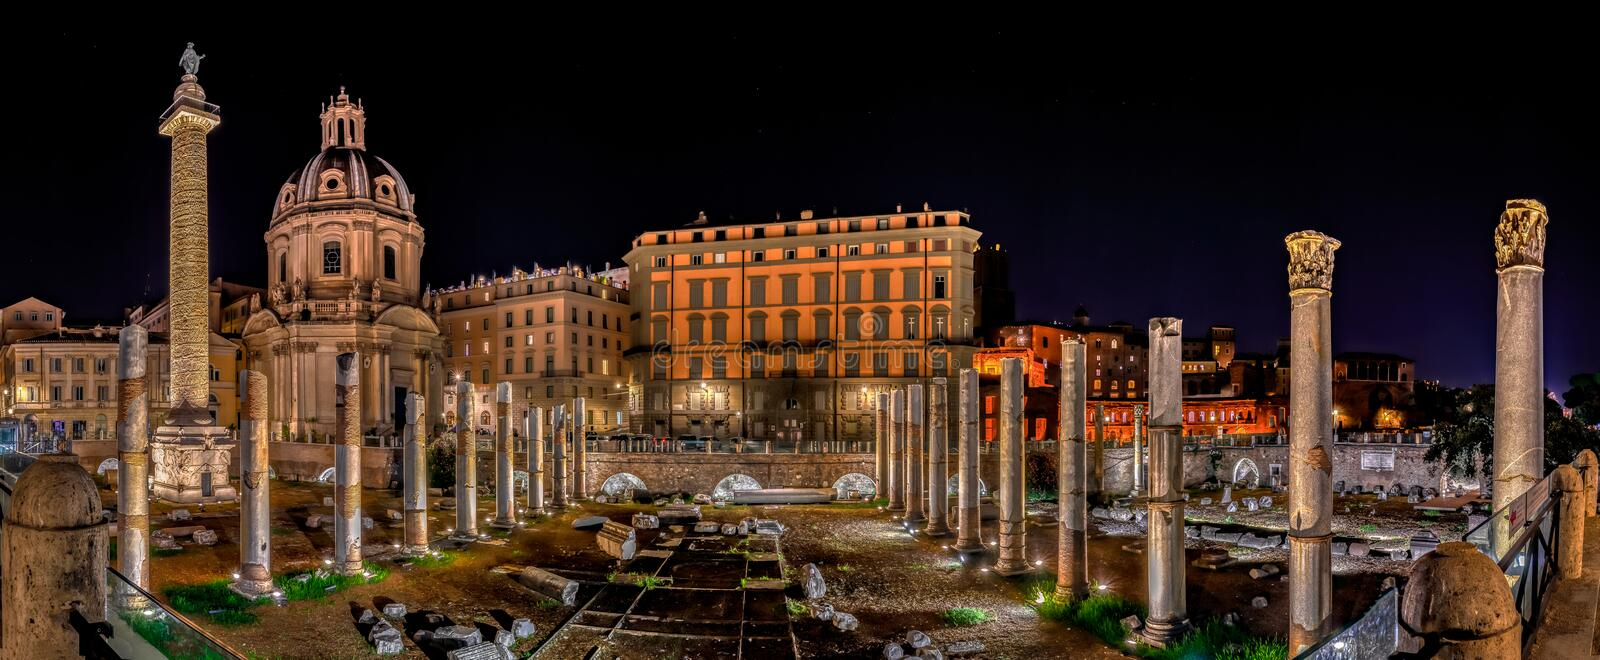 Panoramic view of Trajan forum at night in Rome, Italy stock image